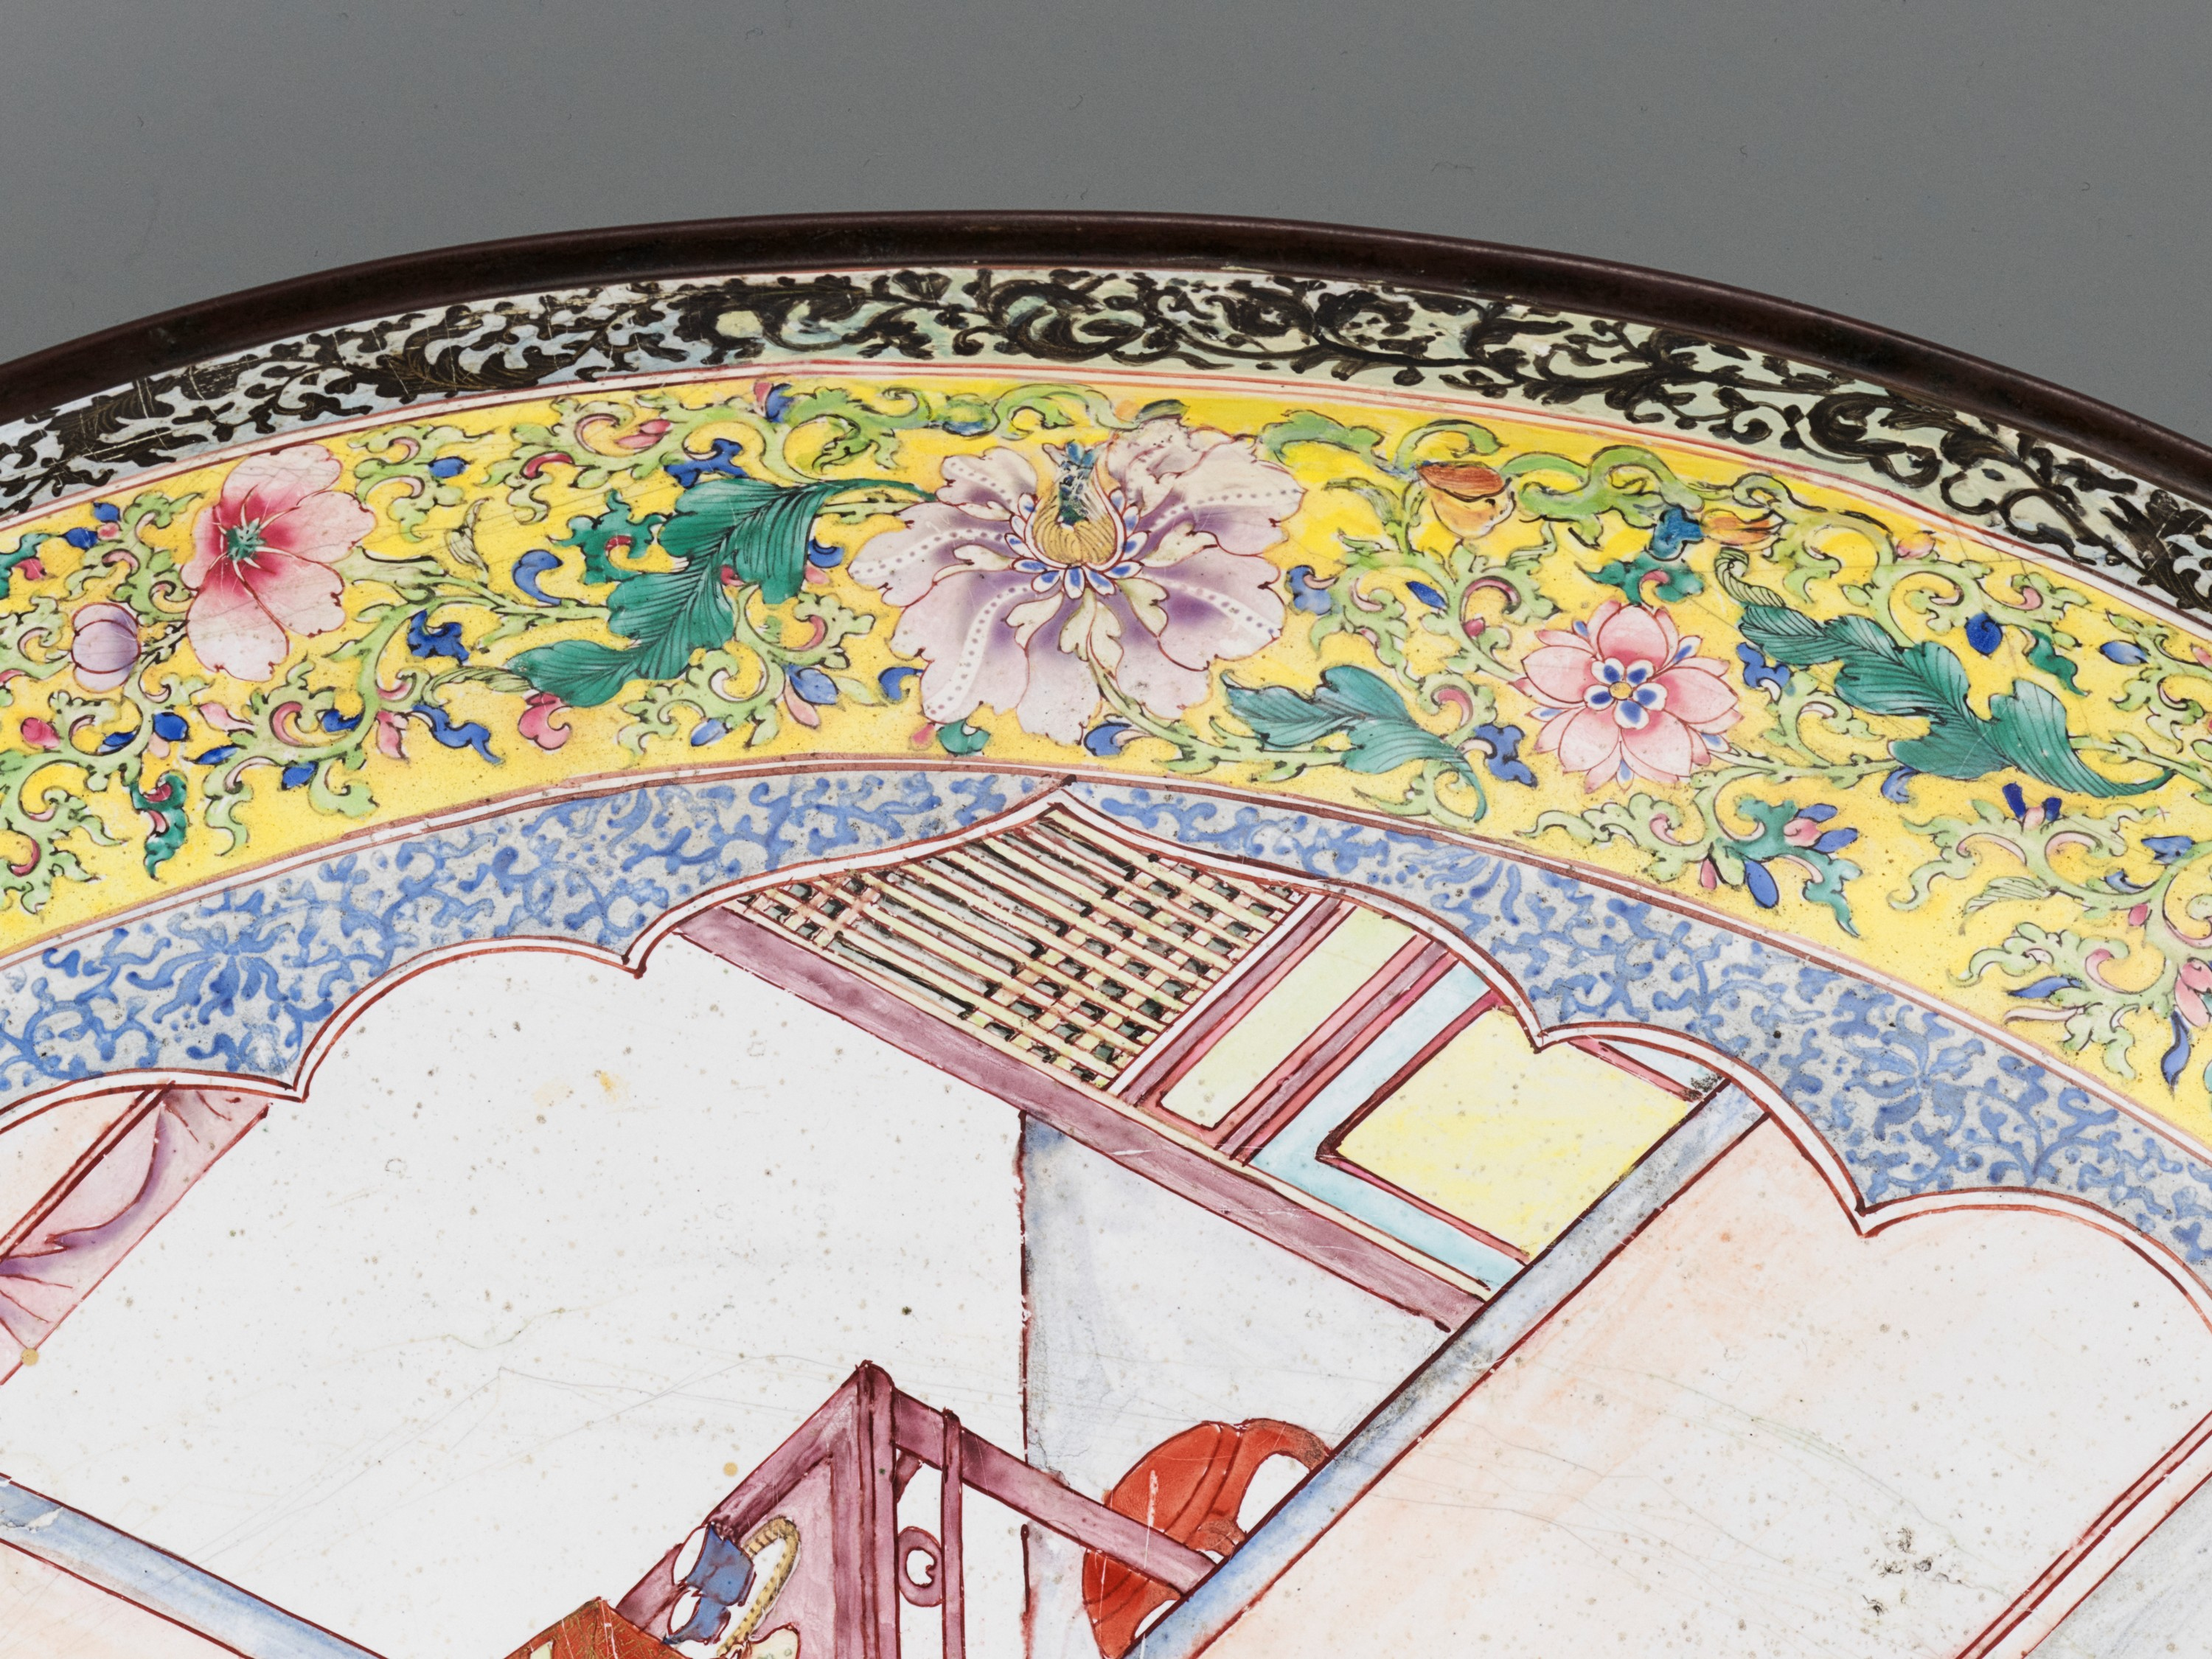 AN EXCEPTIONAL AND VERY LARGE CANTON ENAMEL 'SCHOLARS' DISH, EARLY 18TH CENTURY - Image 10 of 12